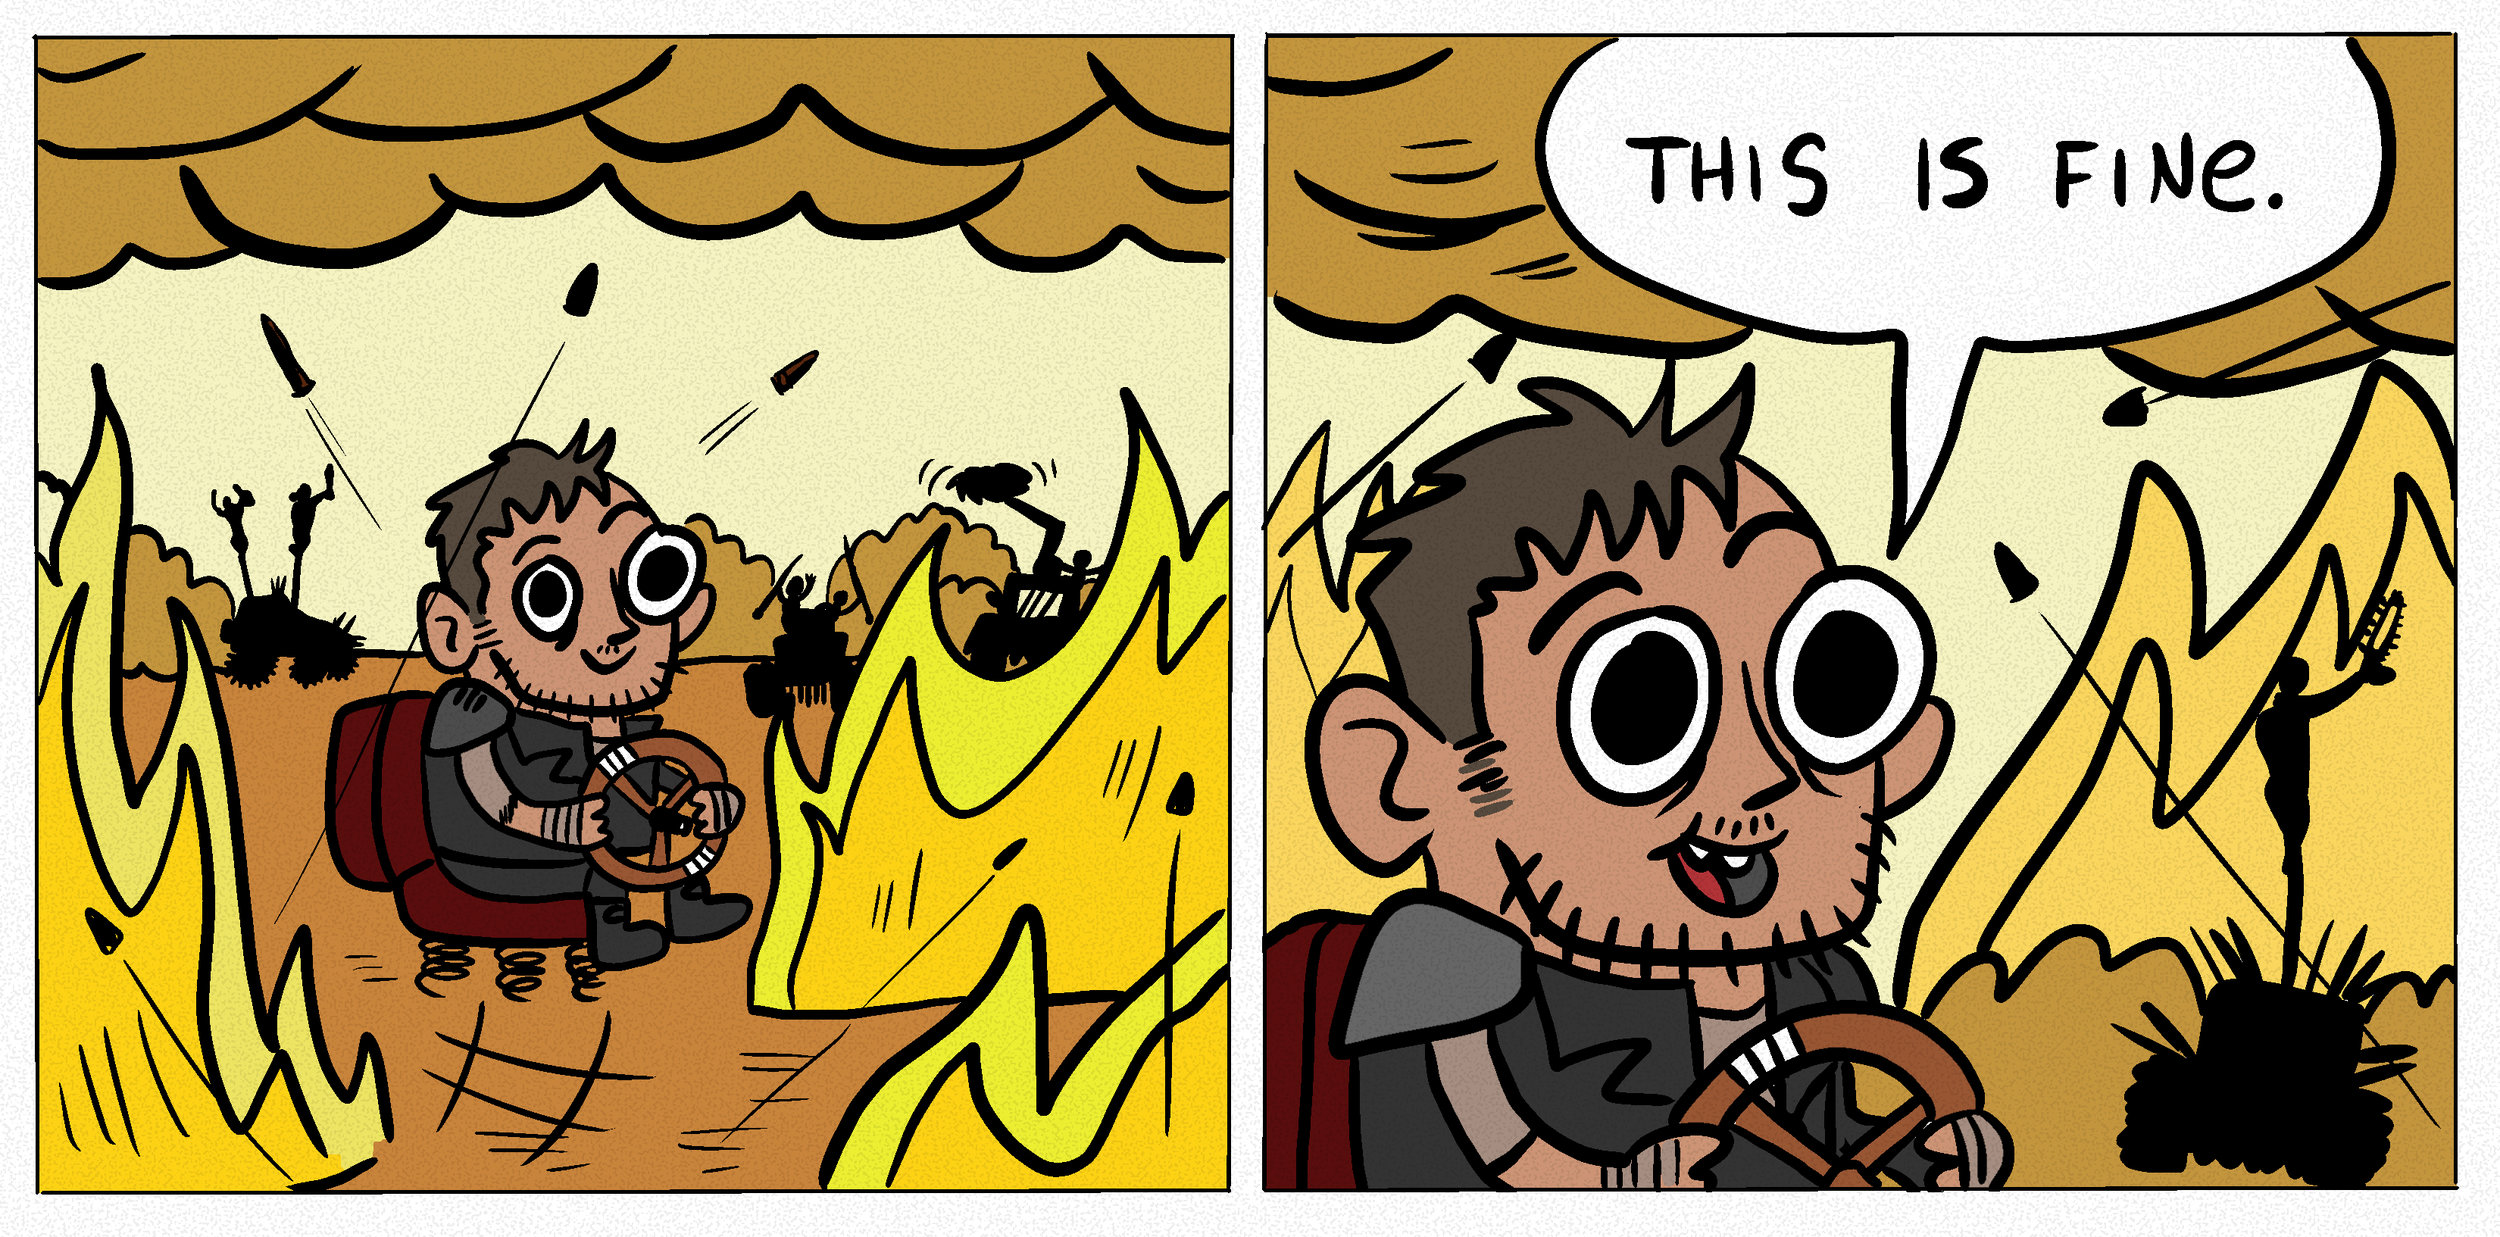 this is fine madmax.jpg